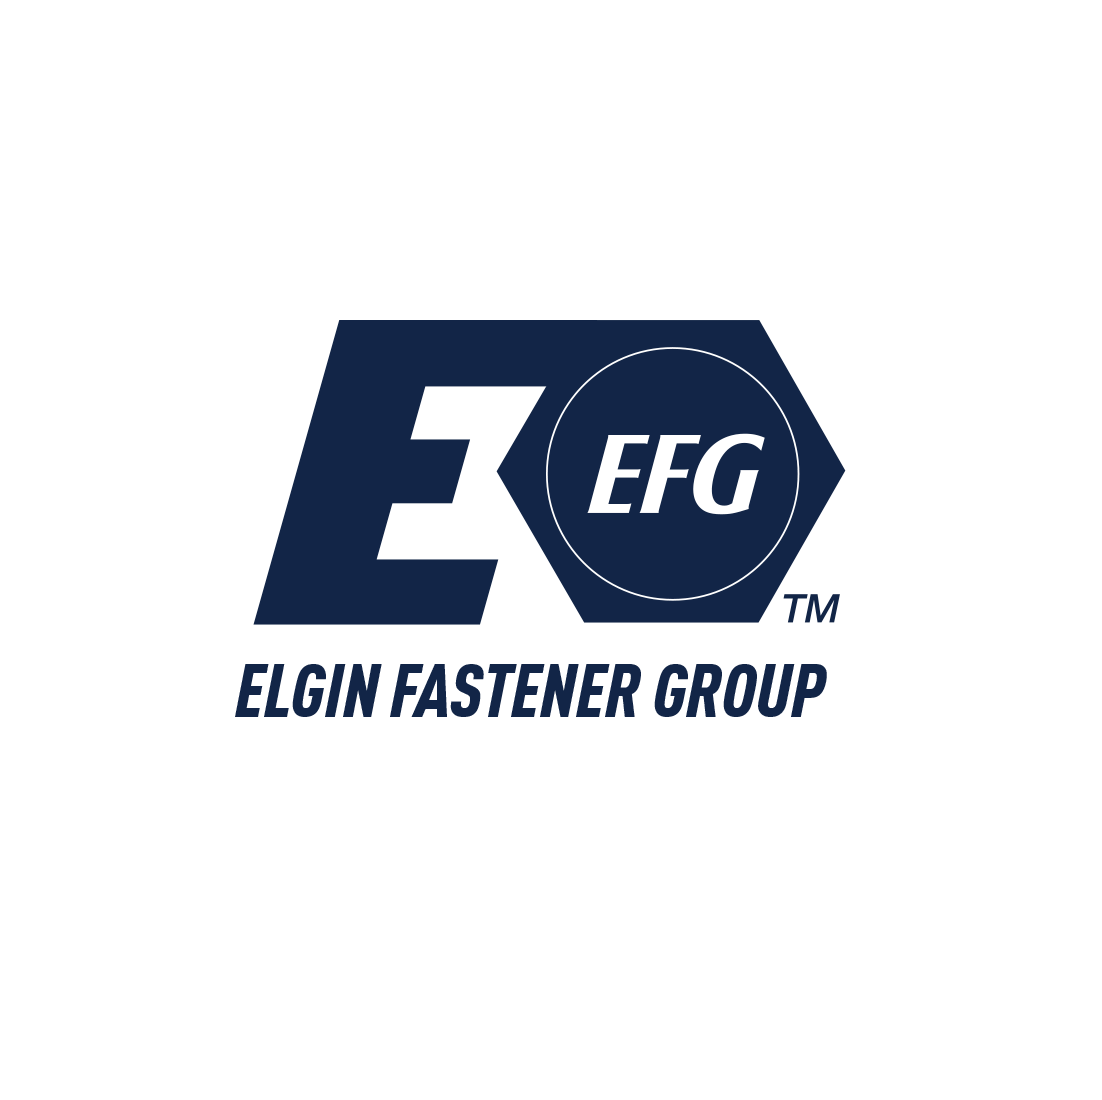 Elgin Fastener Group